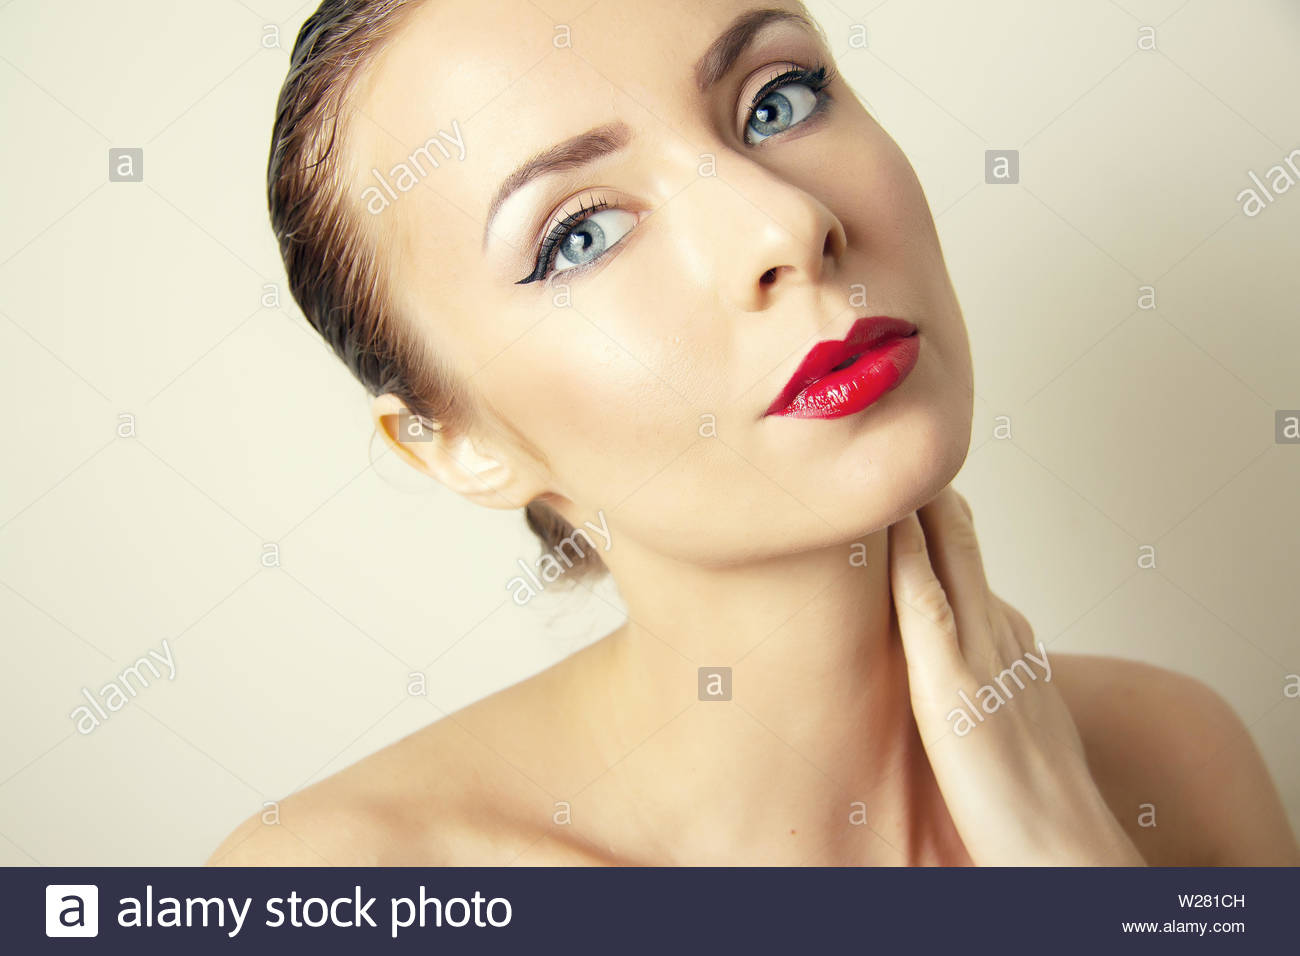 aging problems  of face skin - Stock Image